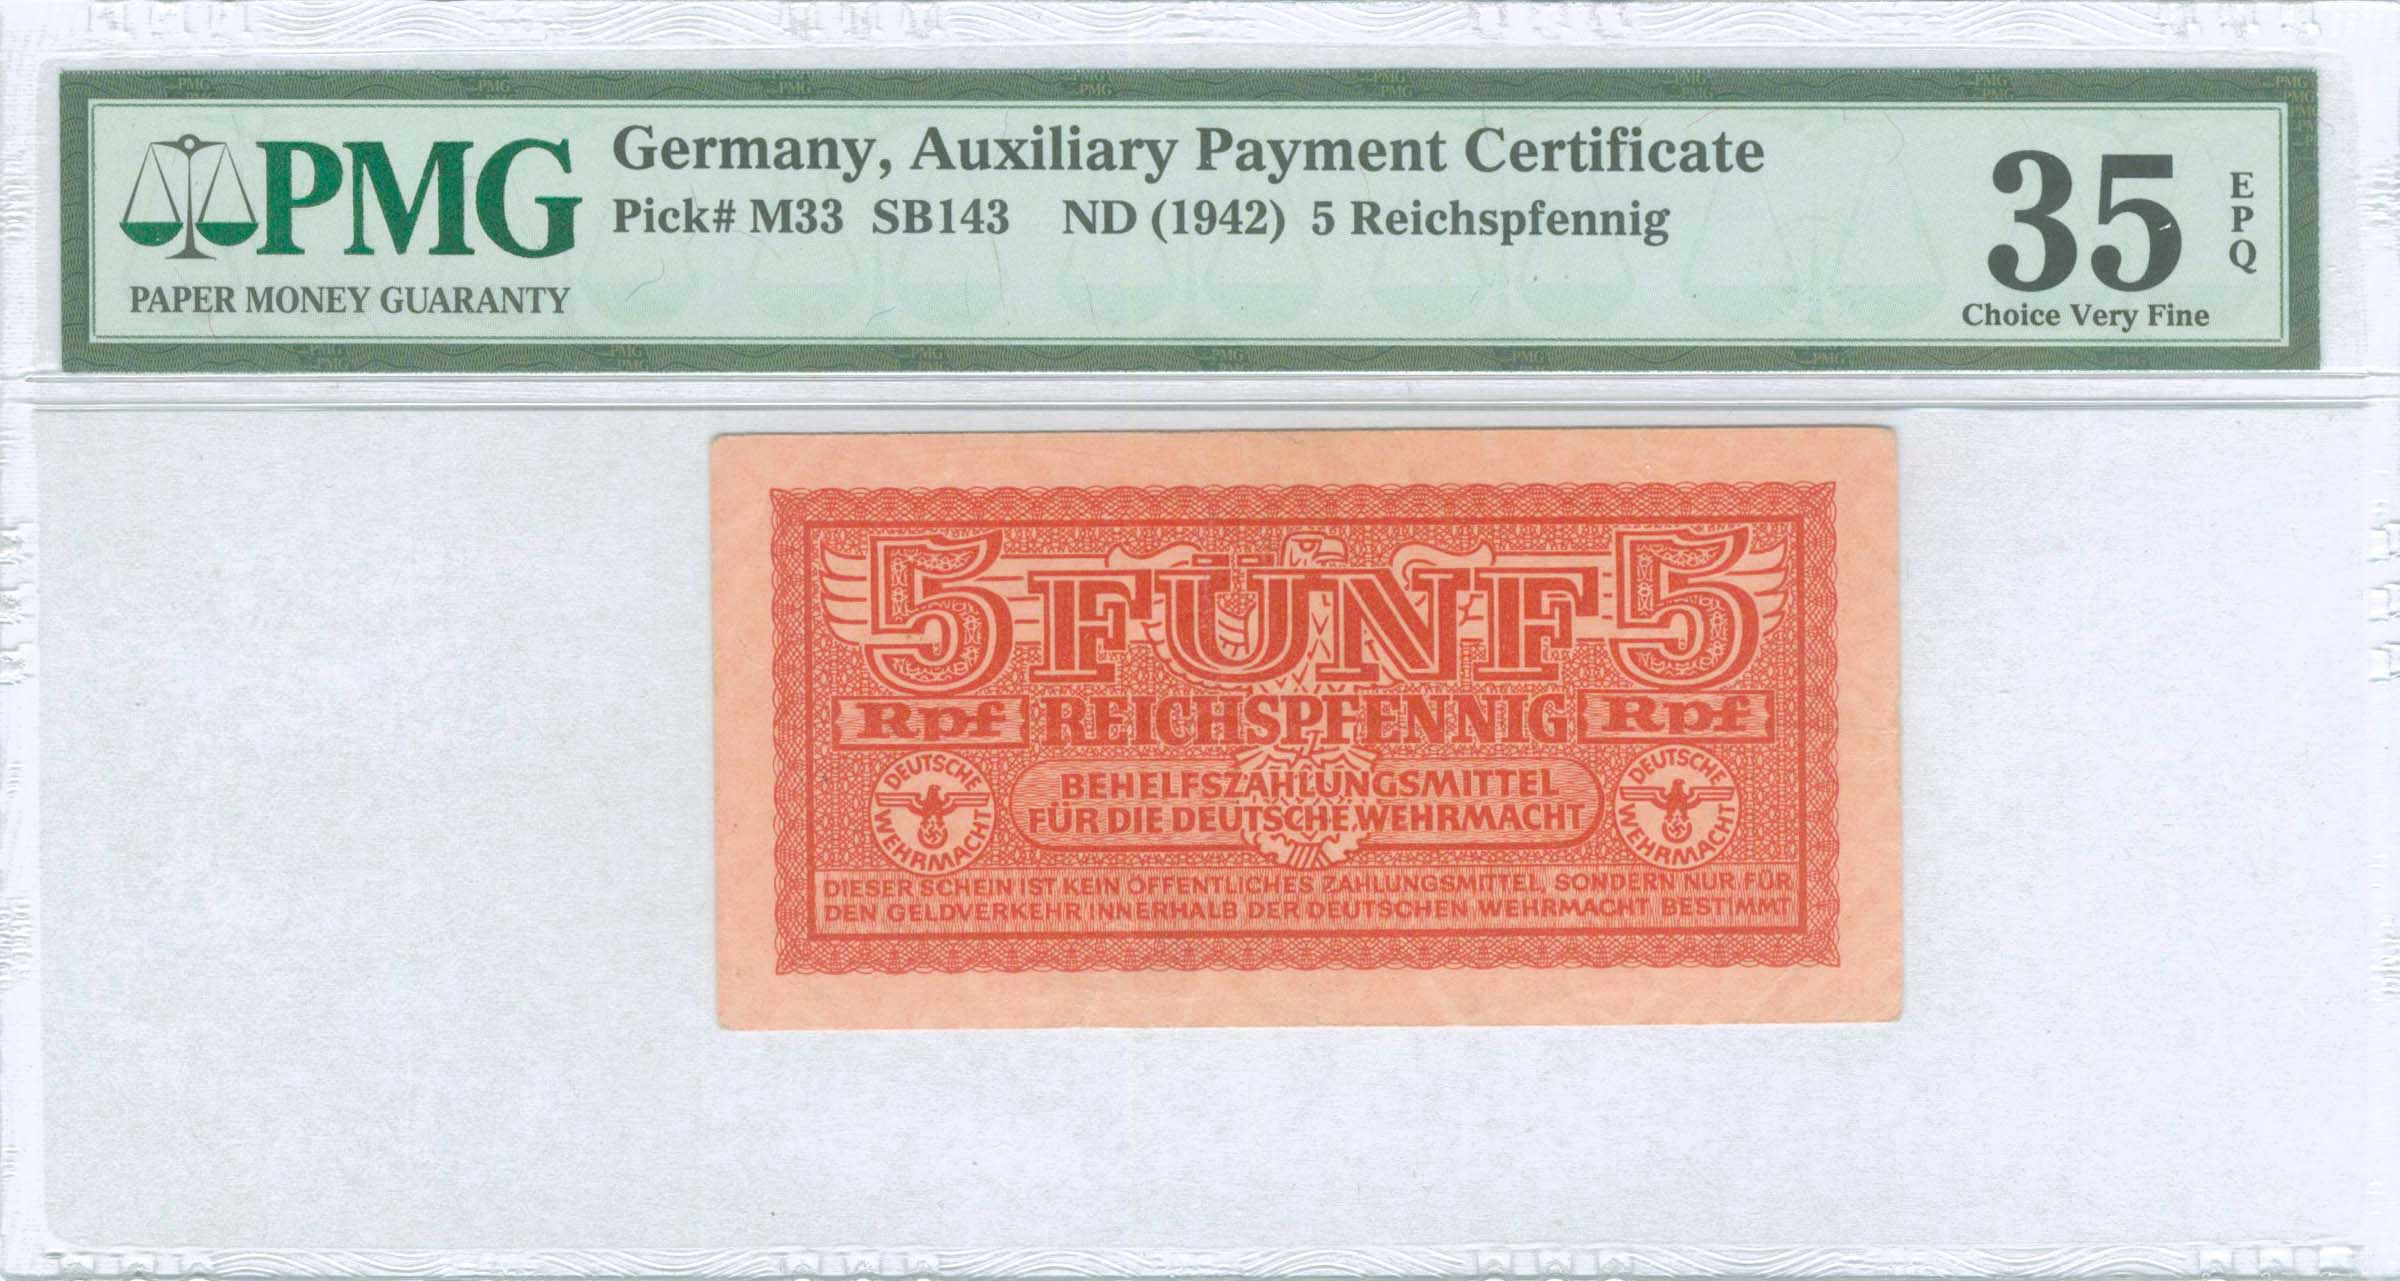 Lot 9404 - GREECE-  PAPER MONEY - BANKNOTES german occupation wwii -  A. Karamitsos Public & LIVE Bid Auction 610 Coins, Medals & Banknotes